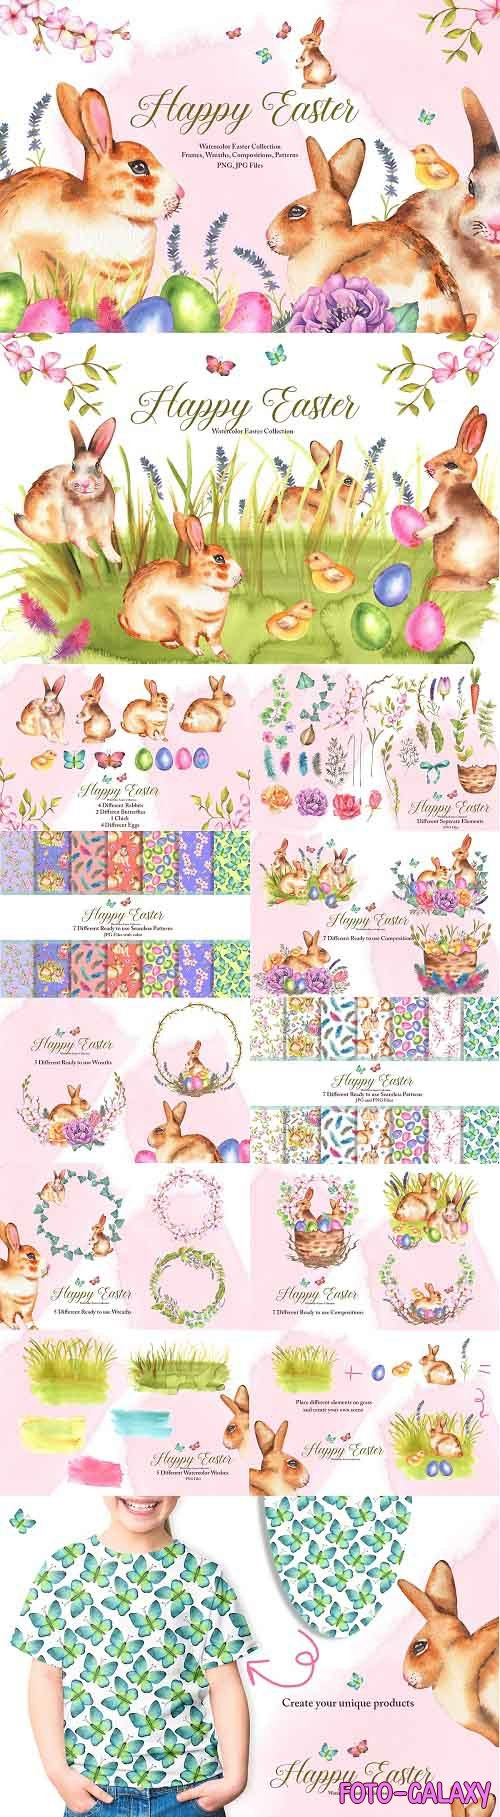 Watercolor Easter Collection - 5809040